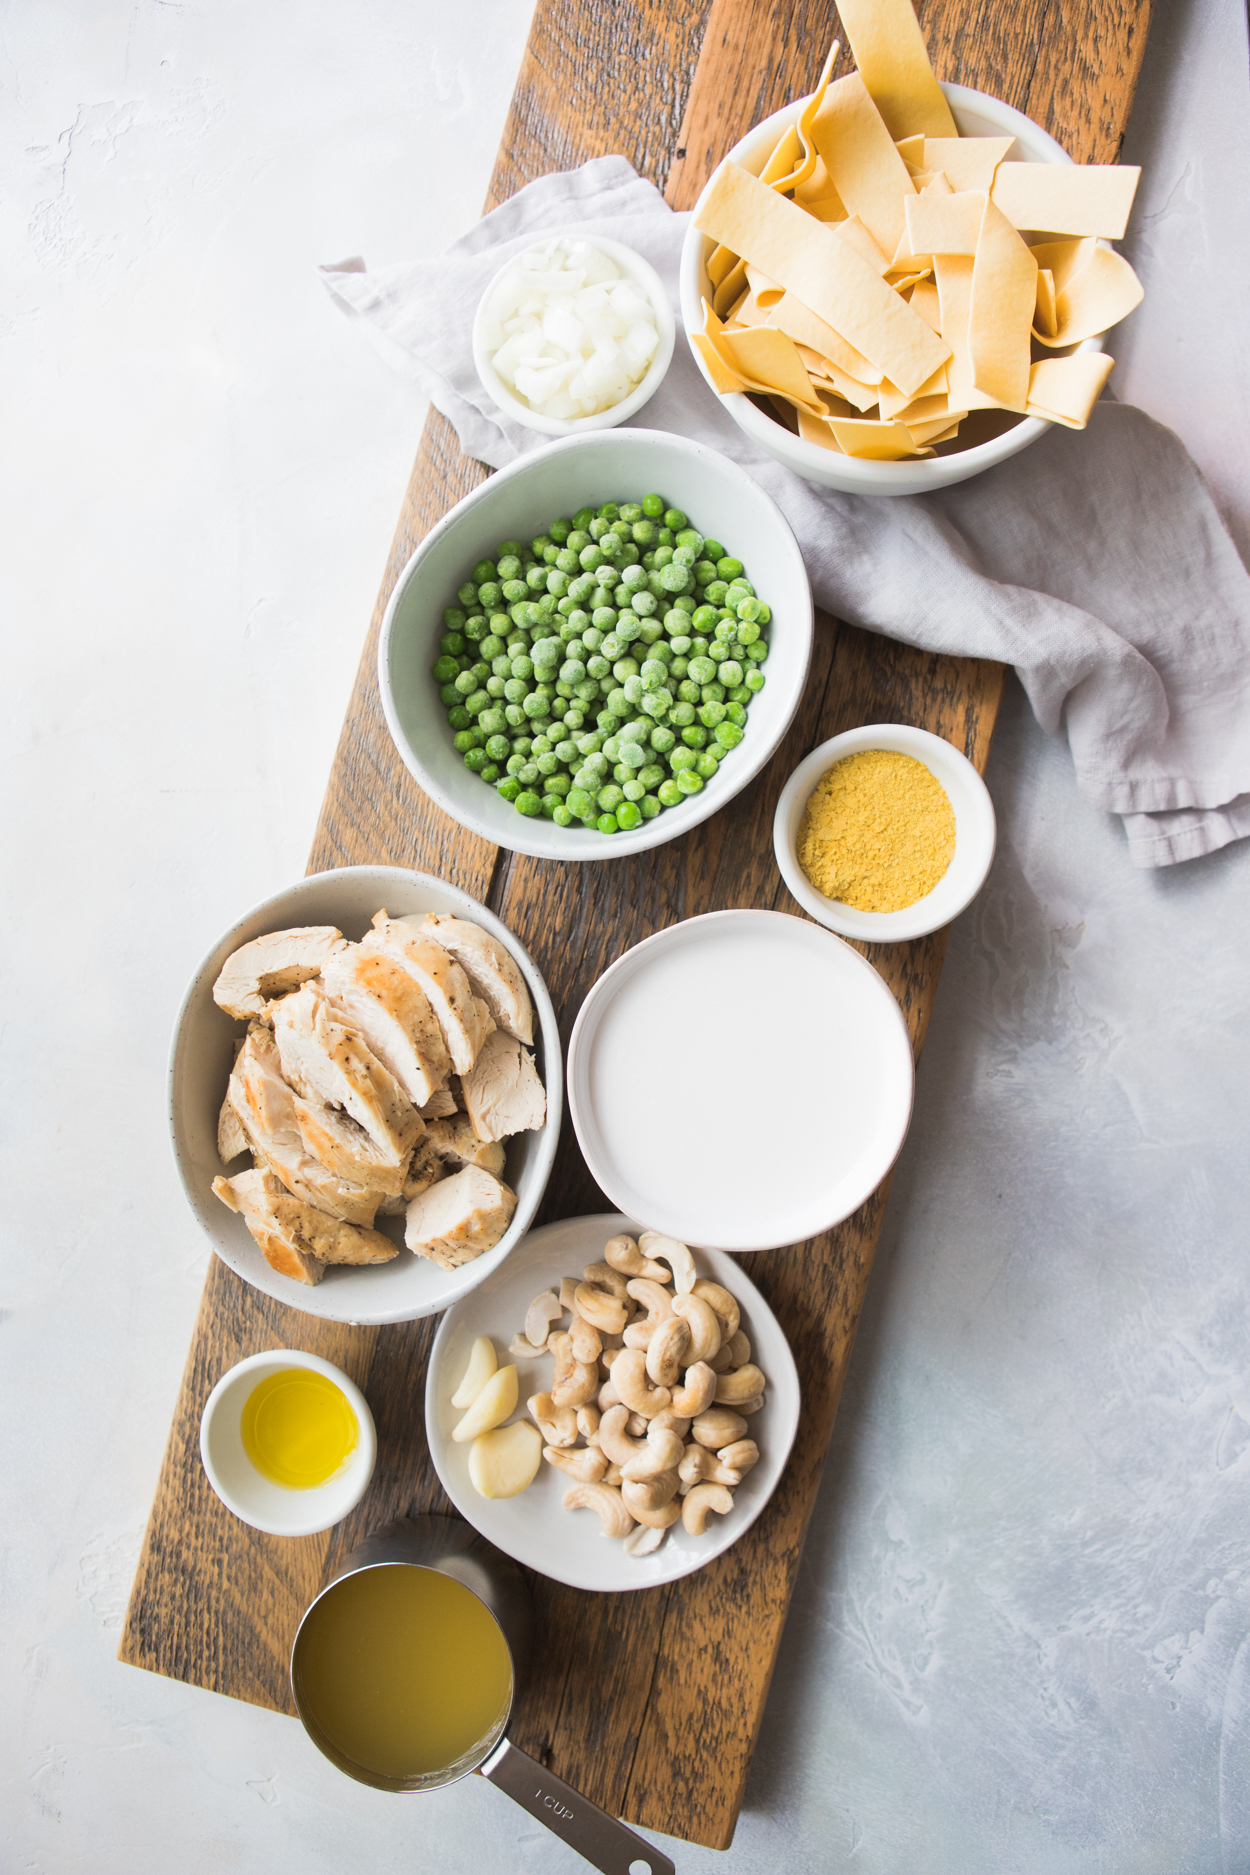 Instant Pot Chicken Alfredo ingredients in white bowls- chicken, cashews, pasta, peas, nutritional yeast, onions, oil, lemon juice and chicken broth